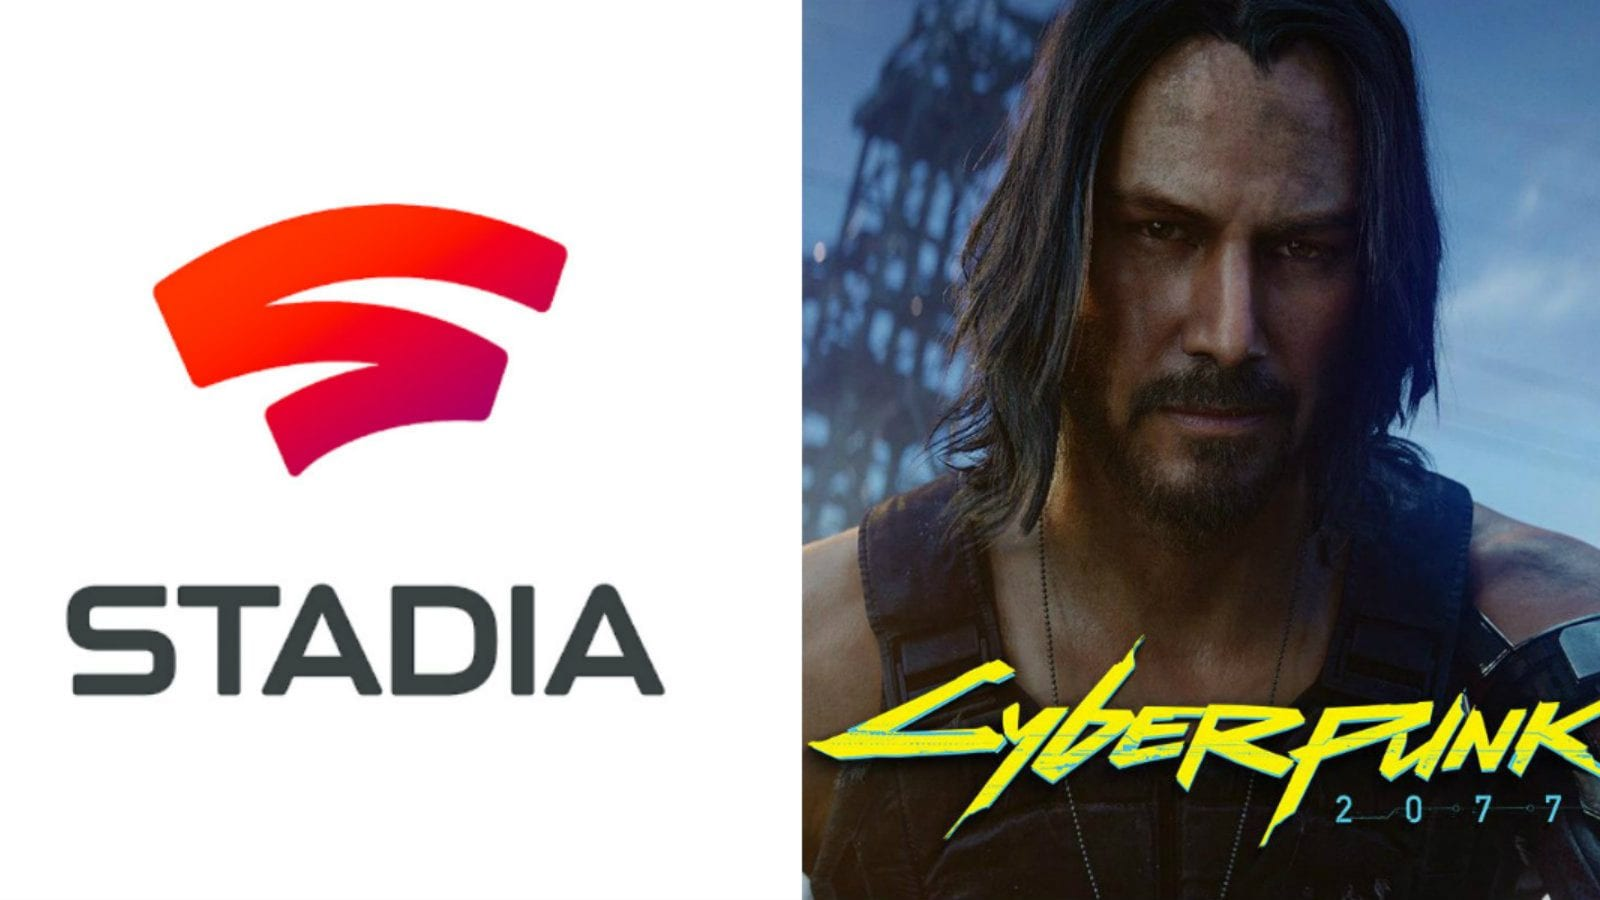 Google Stadia launches Cyberpunk 2077 on November 19